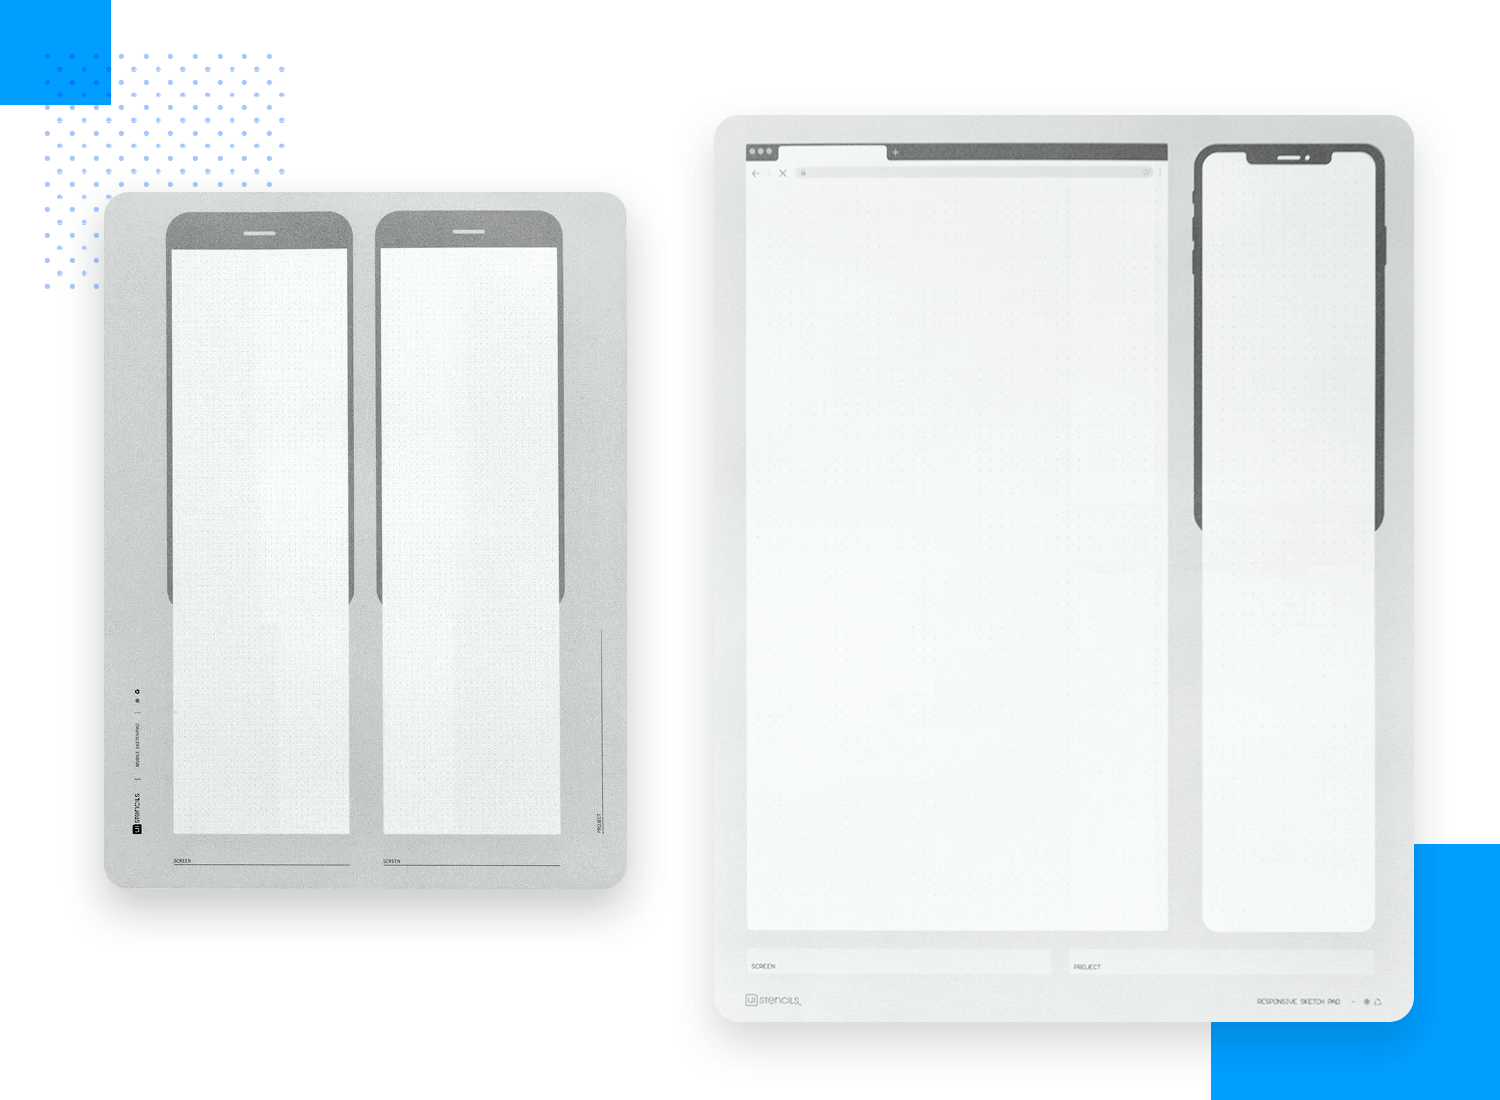 Paper prototyping templates - expandable sketch pads